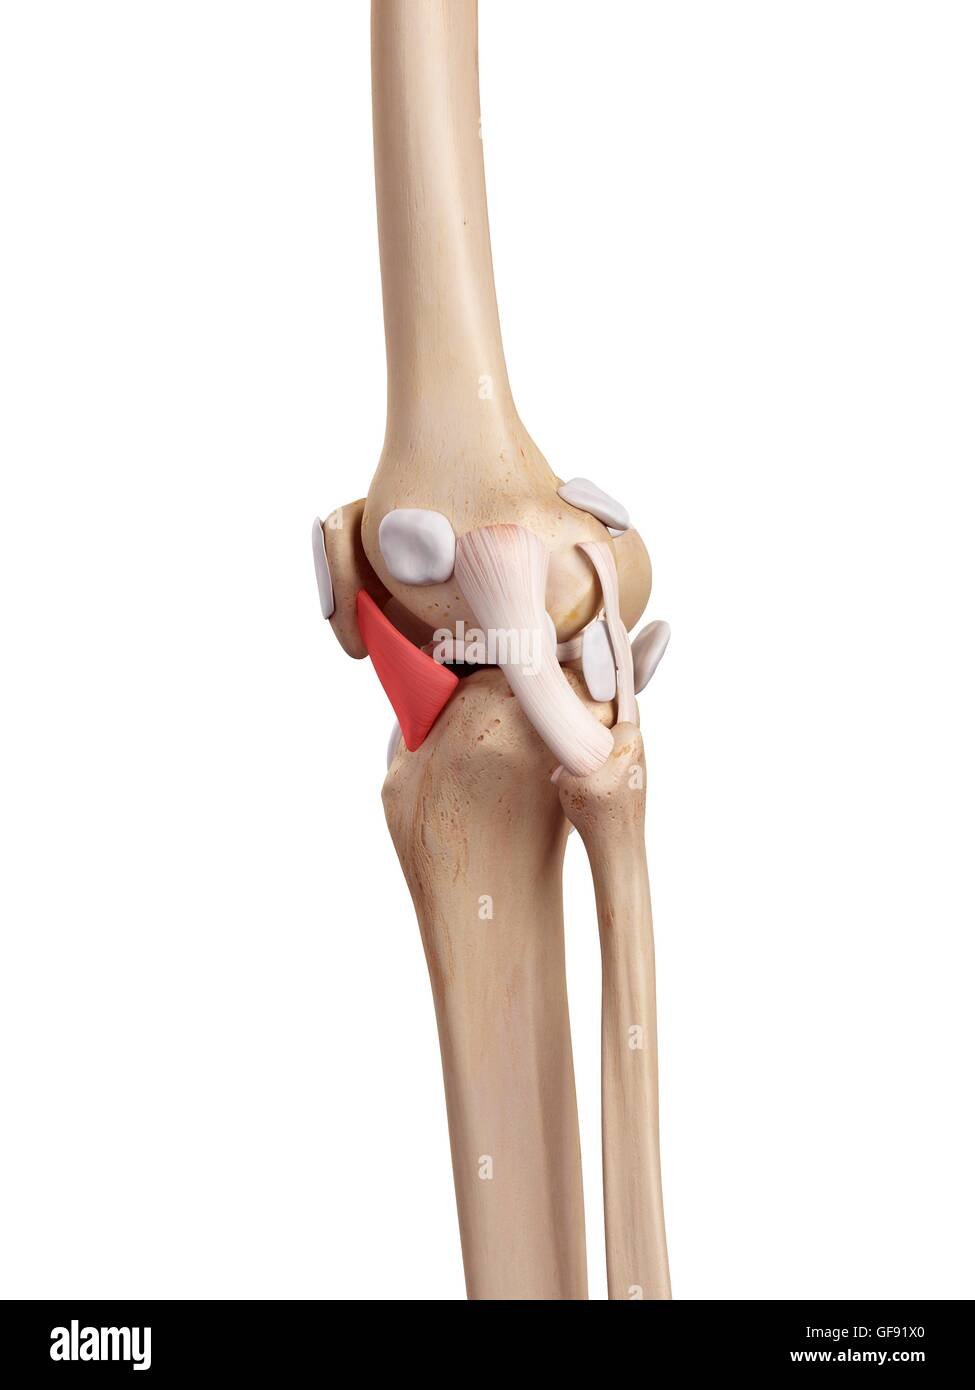 Human Knee Ligaments Stock Photos & Human Knee Ligaments Stock ...